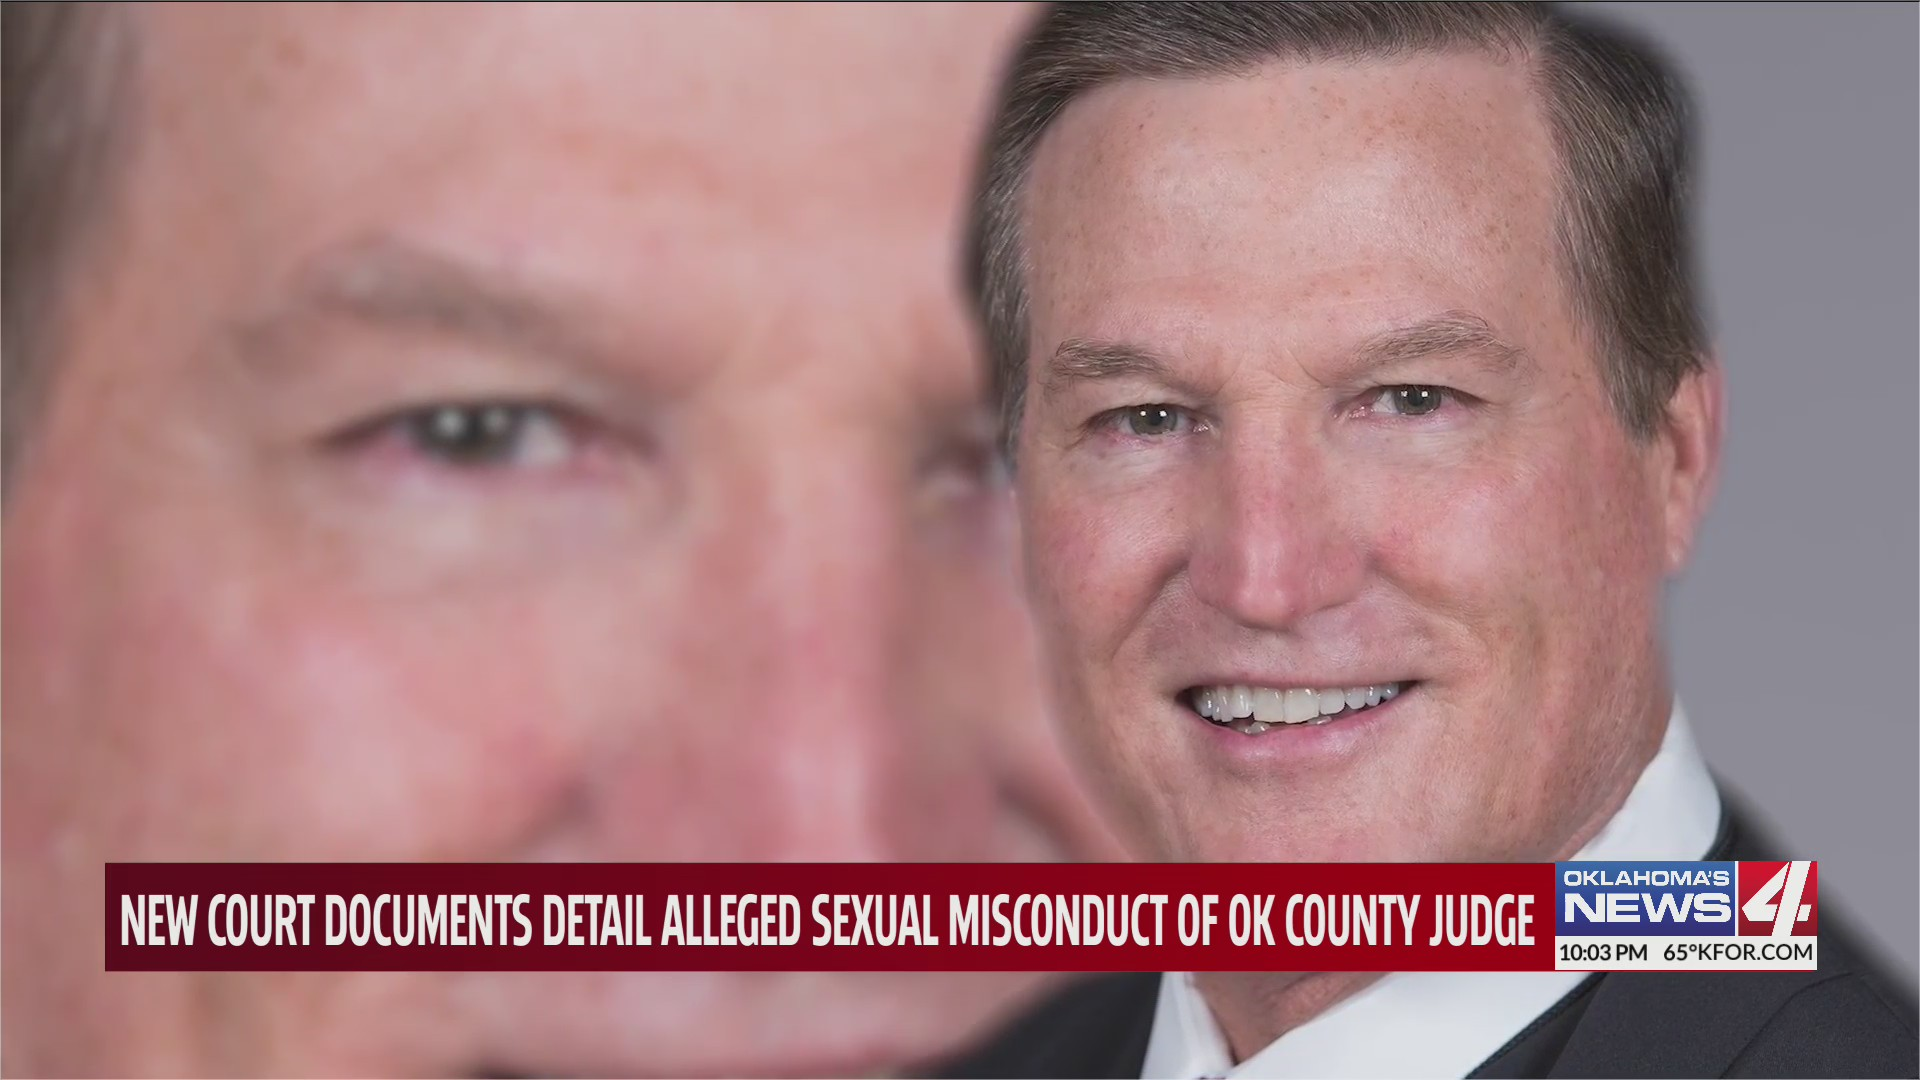 Detailed court documents reveal alleged sexual battery between former Oklahoma County judge and two female attorneys